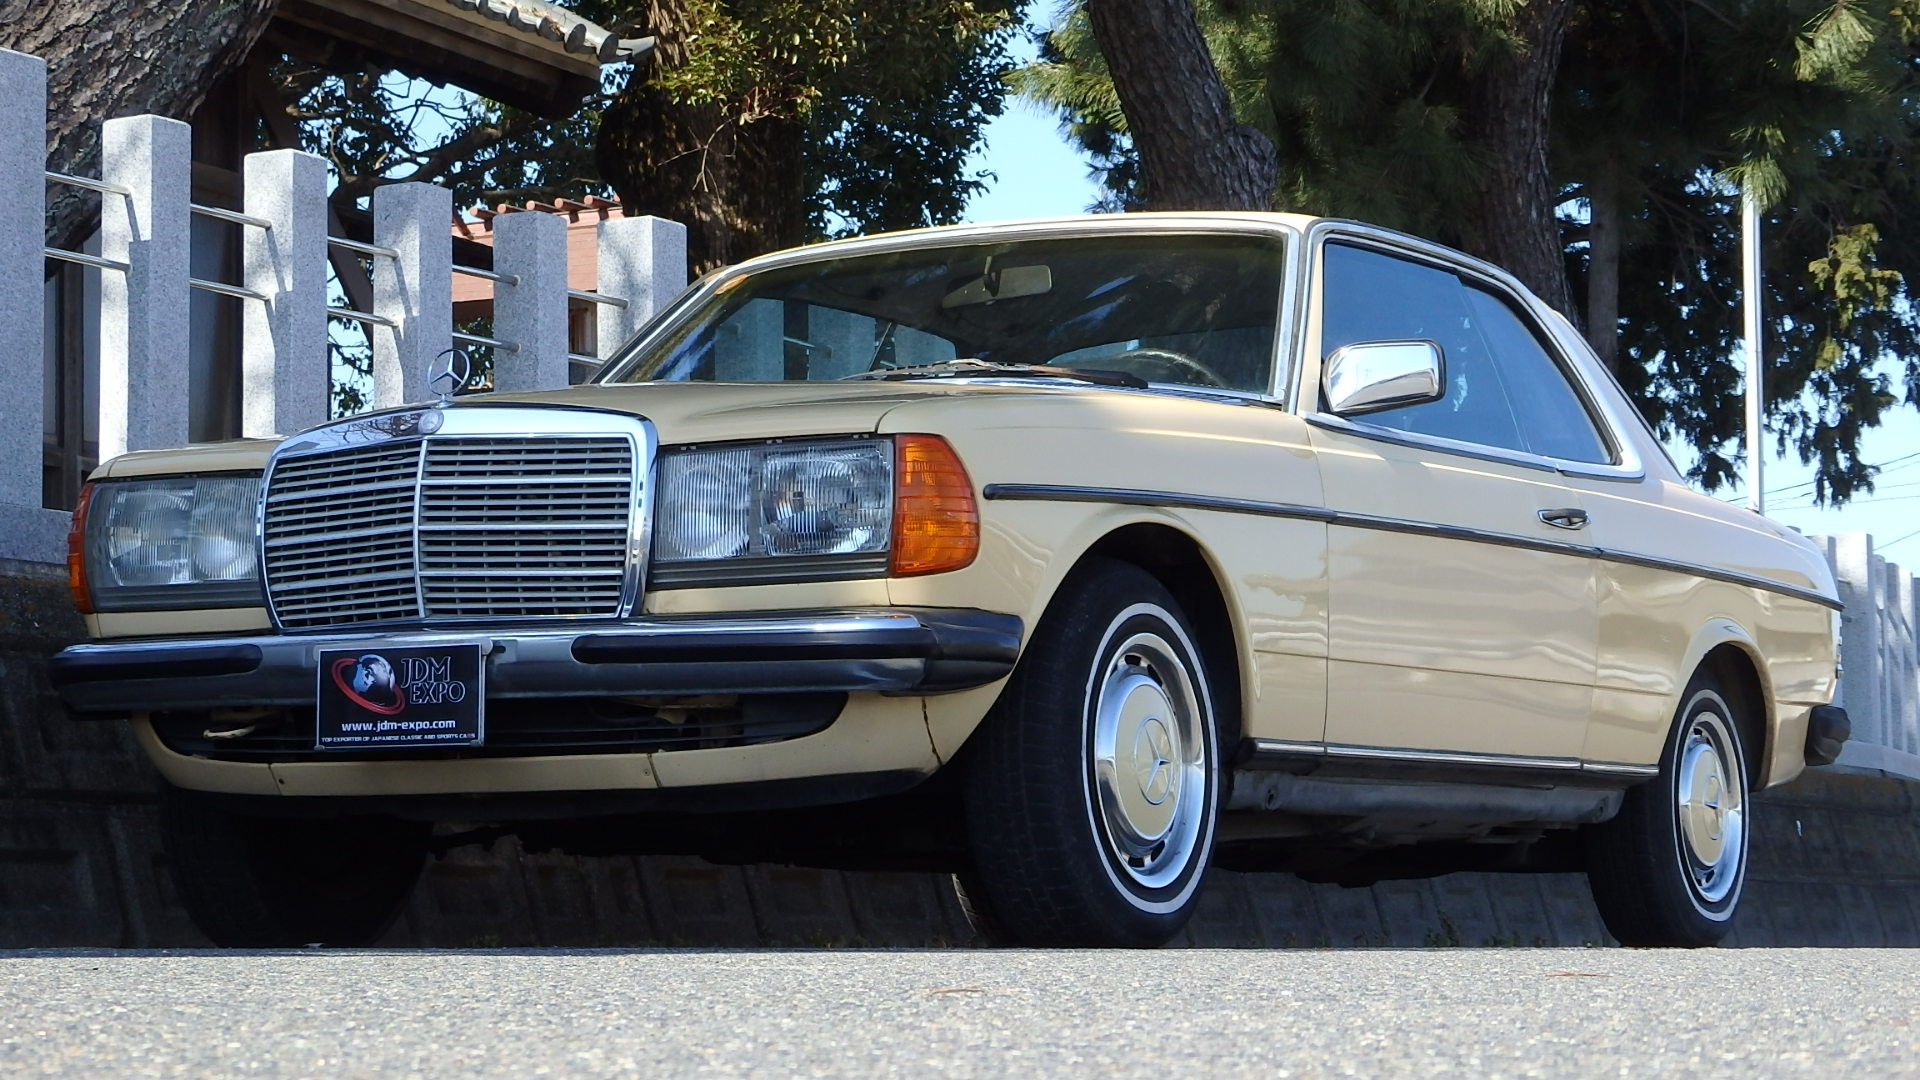 Mercedes benz 280ce for sale in japan jdm expo porsche bmw for Mercedes benz 280ce for sale